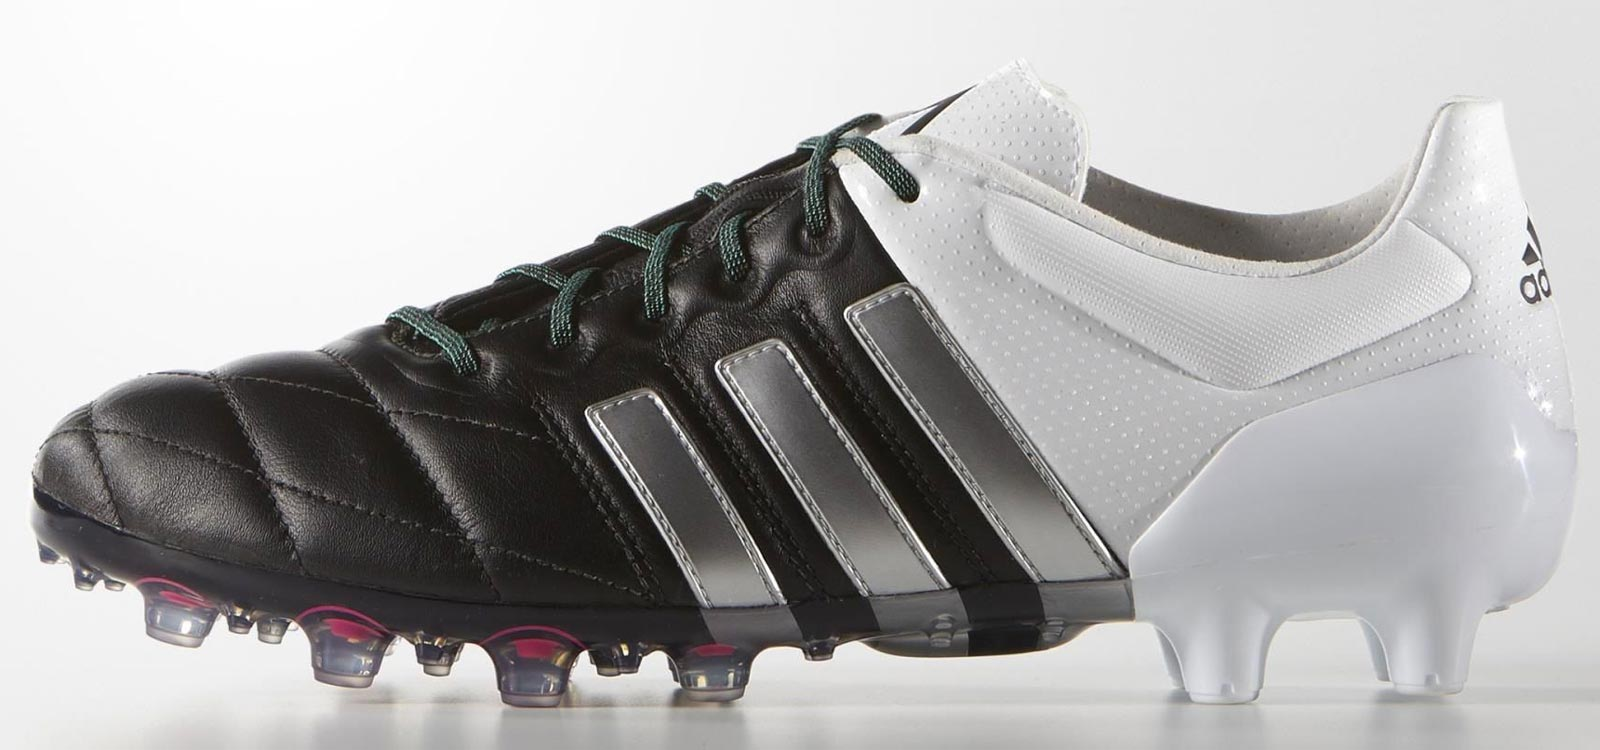 adidas ace 15 leather shock pink black football boots